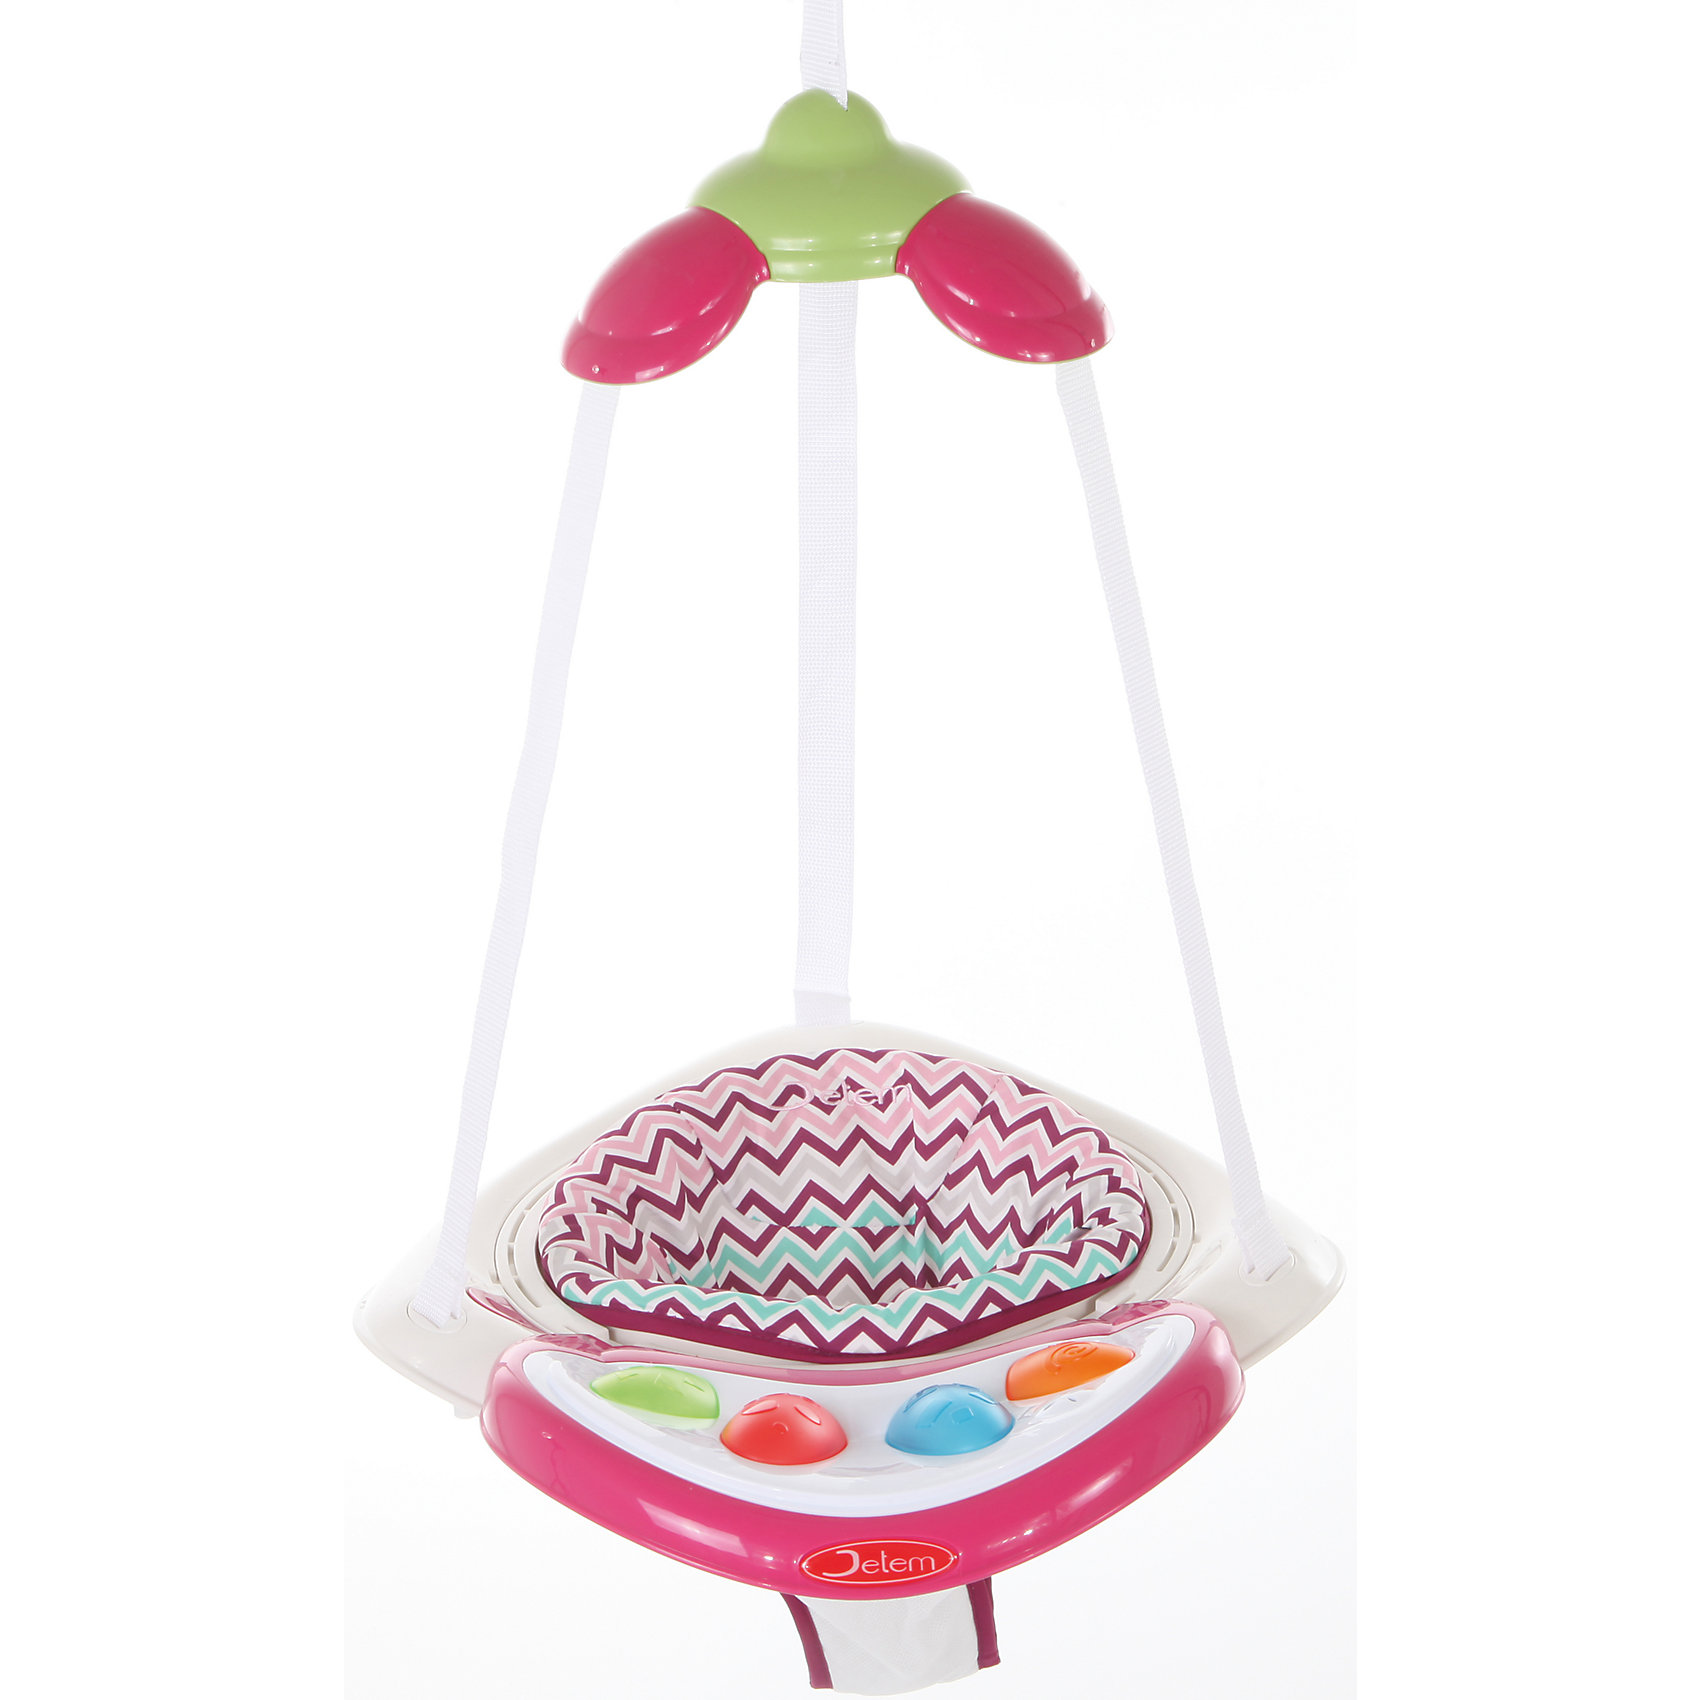 Прыгунки Air Jumper, Jetem, raspberry stripe от myToys